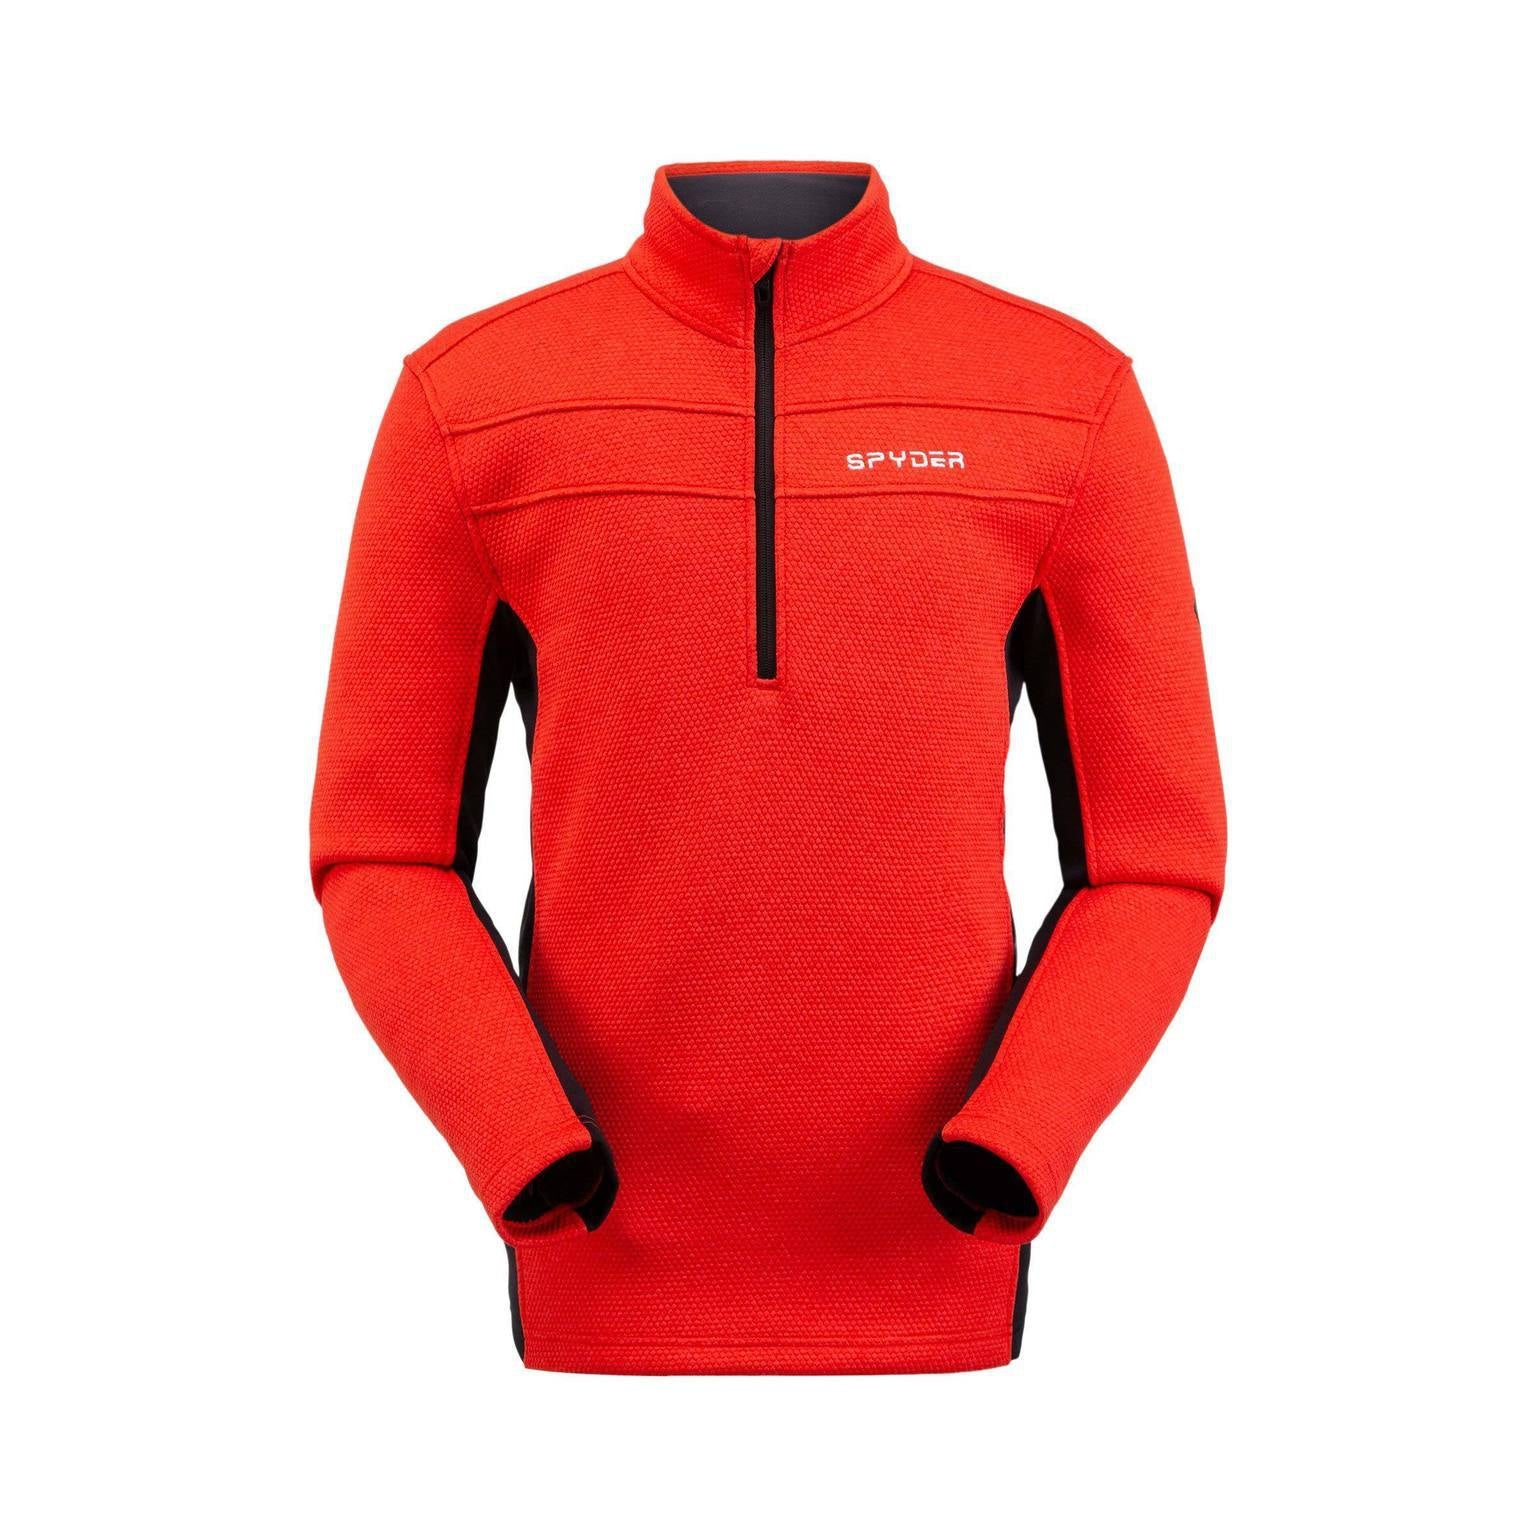 Spyder 2021 Men's ENCORE HALF ZIP